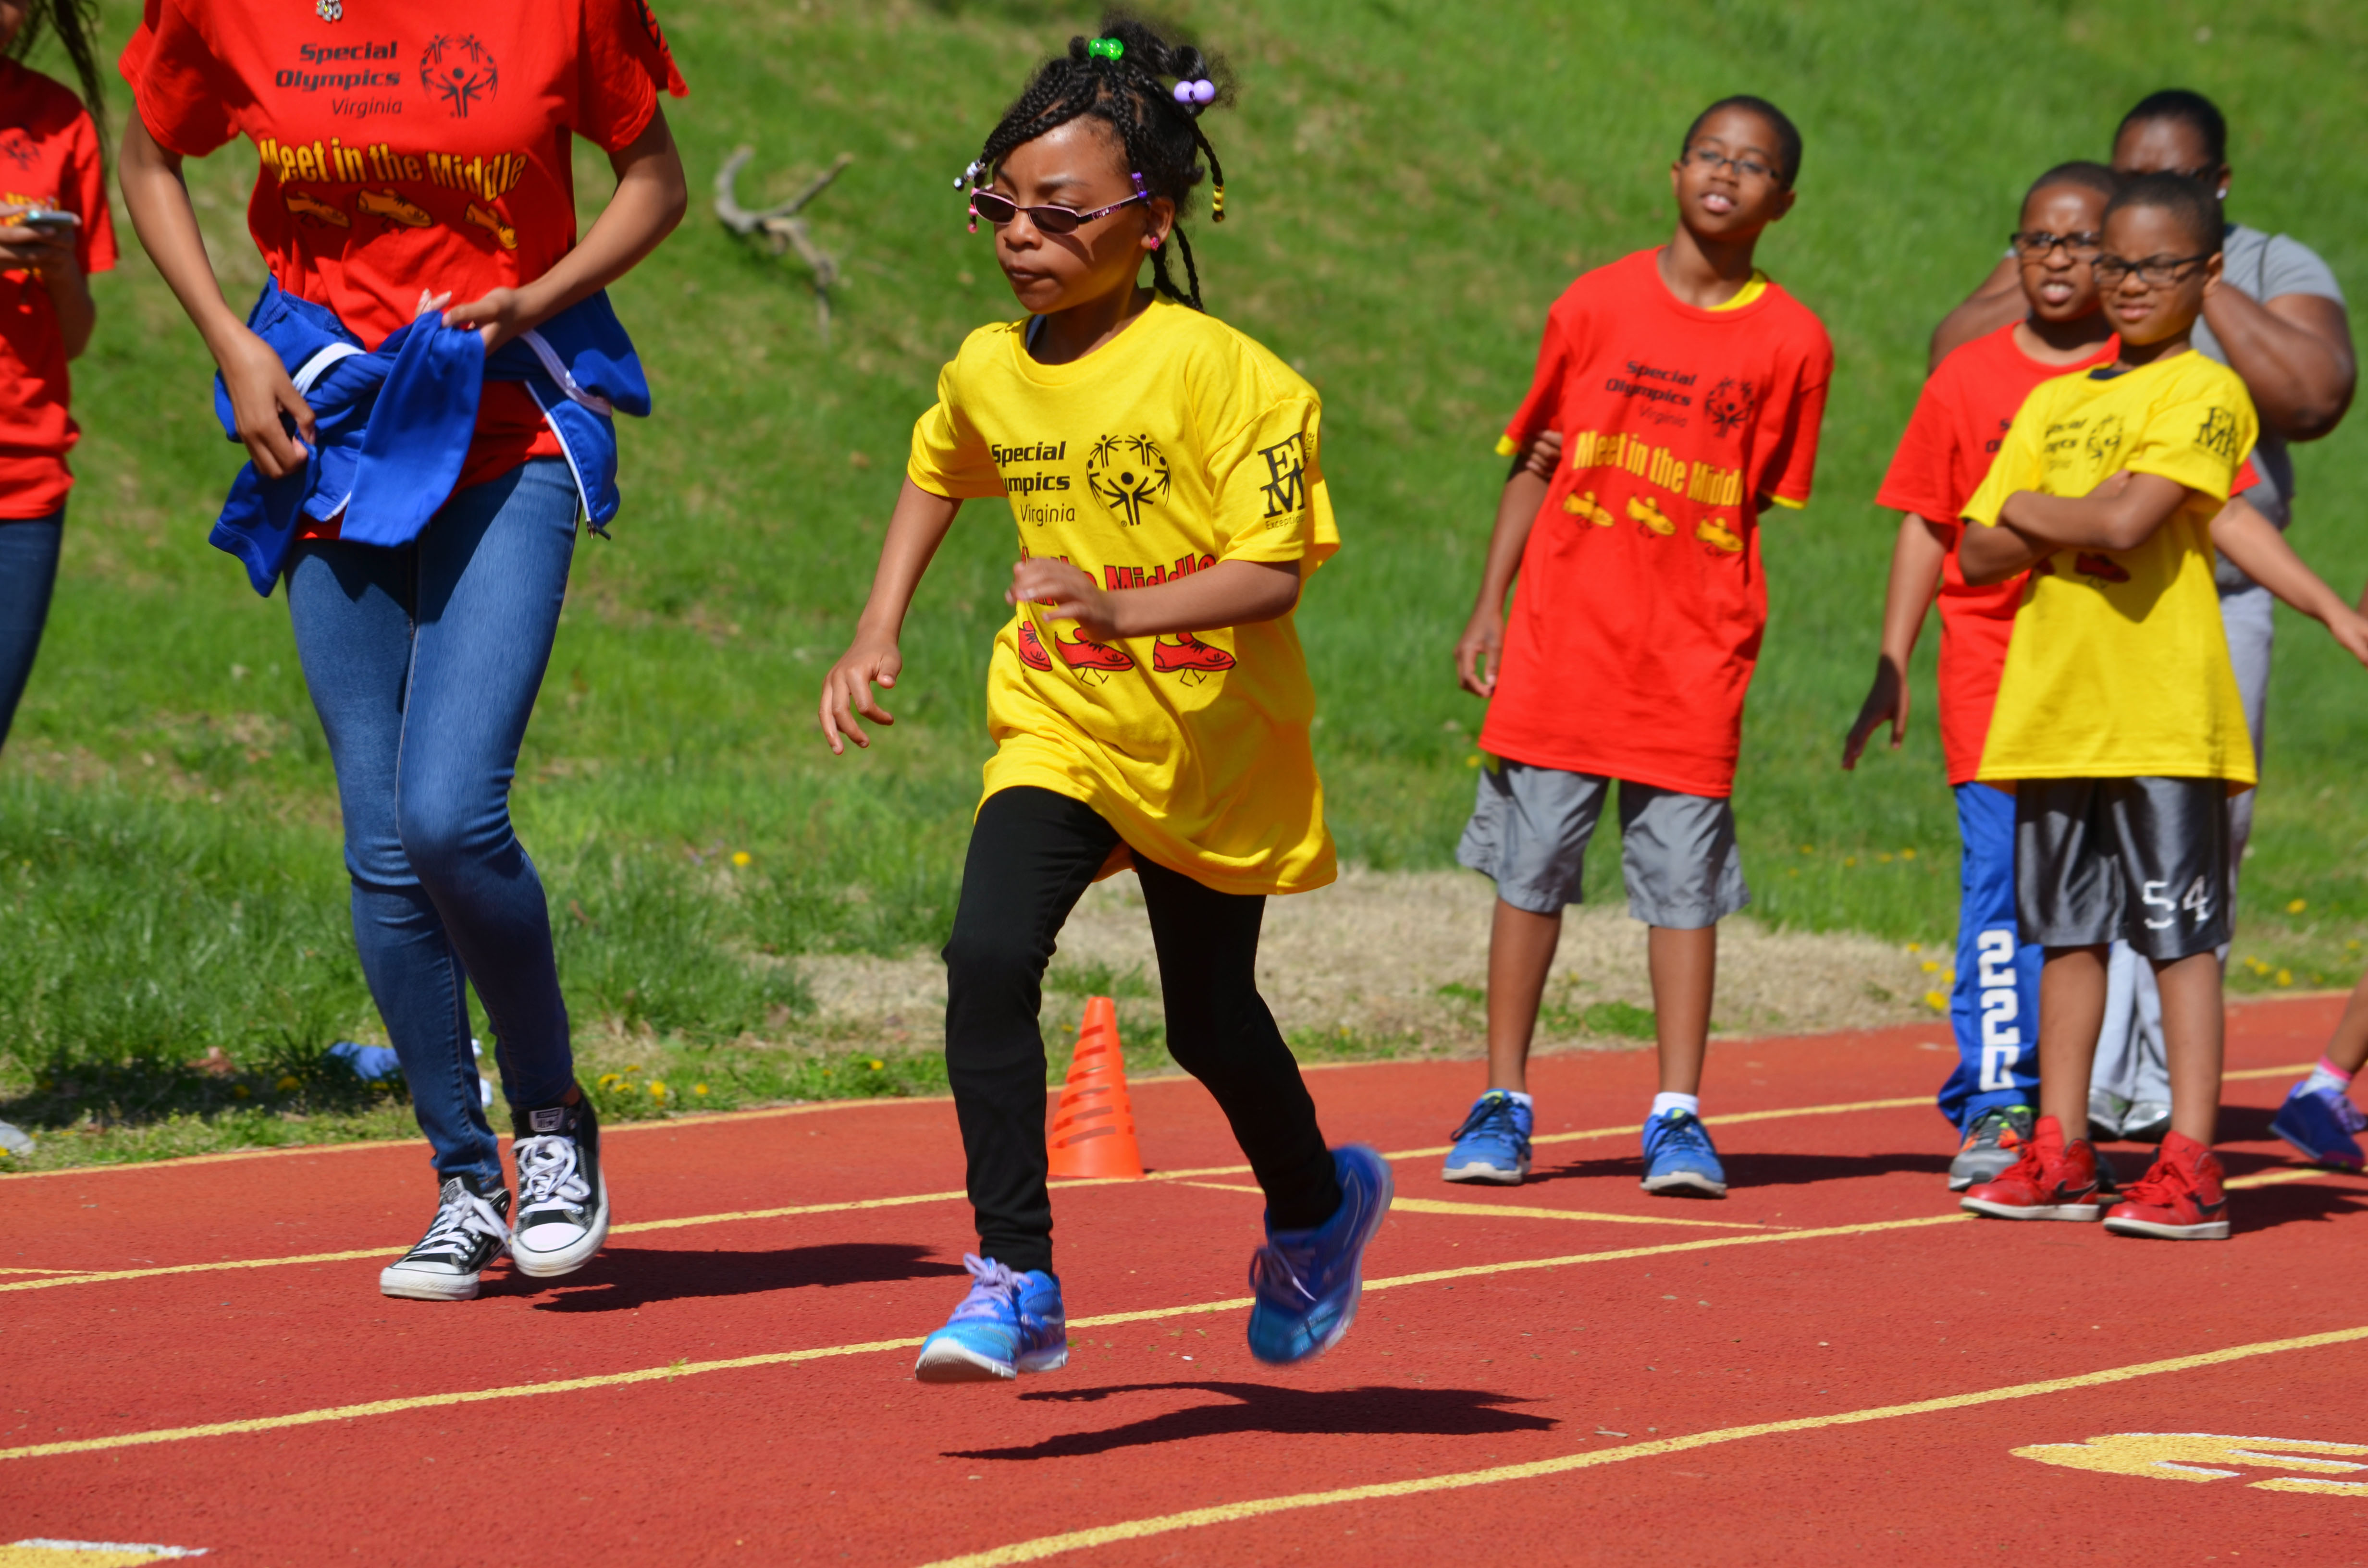 Special Olympics' 'Meet in the Middle' held at Butler Stadium